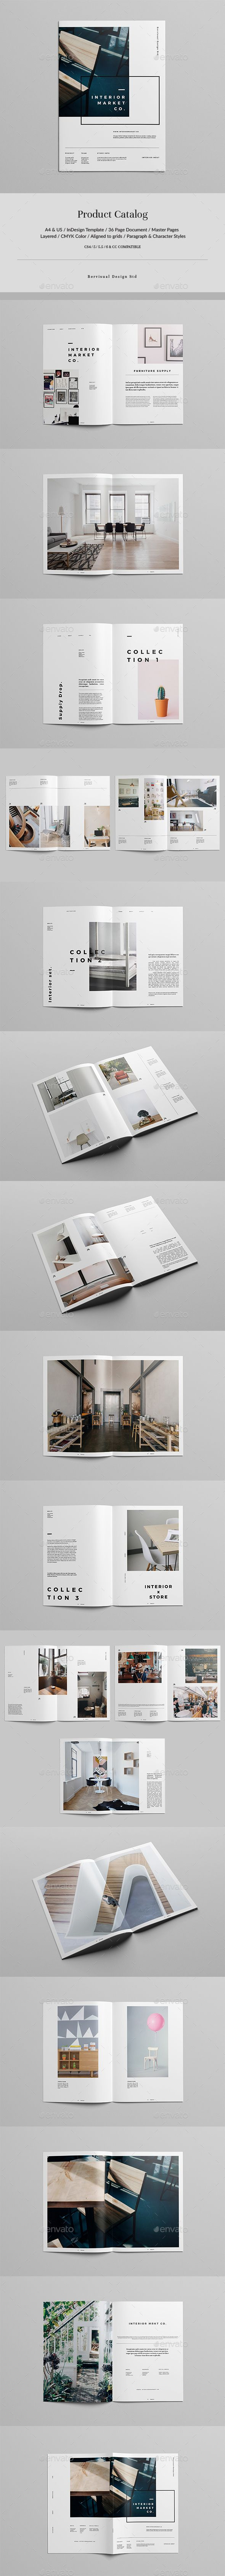 Furniture Product Catalog - Catalogs Brochures Download here : https://graphicriver.net/item/product-catalogue/19265747?s_rank=127&ref=Al-fatih